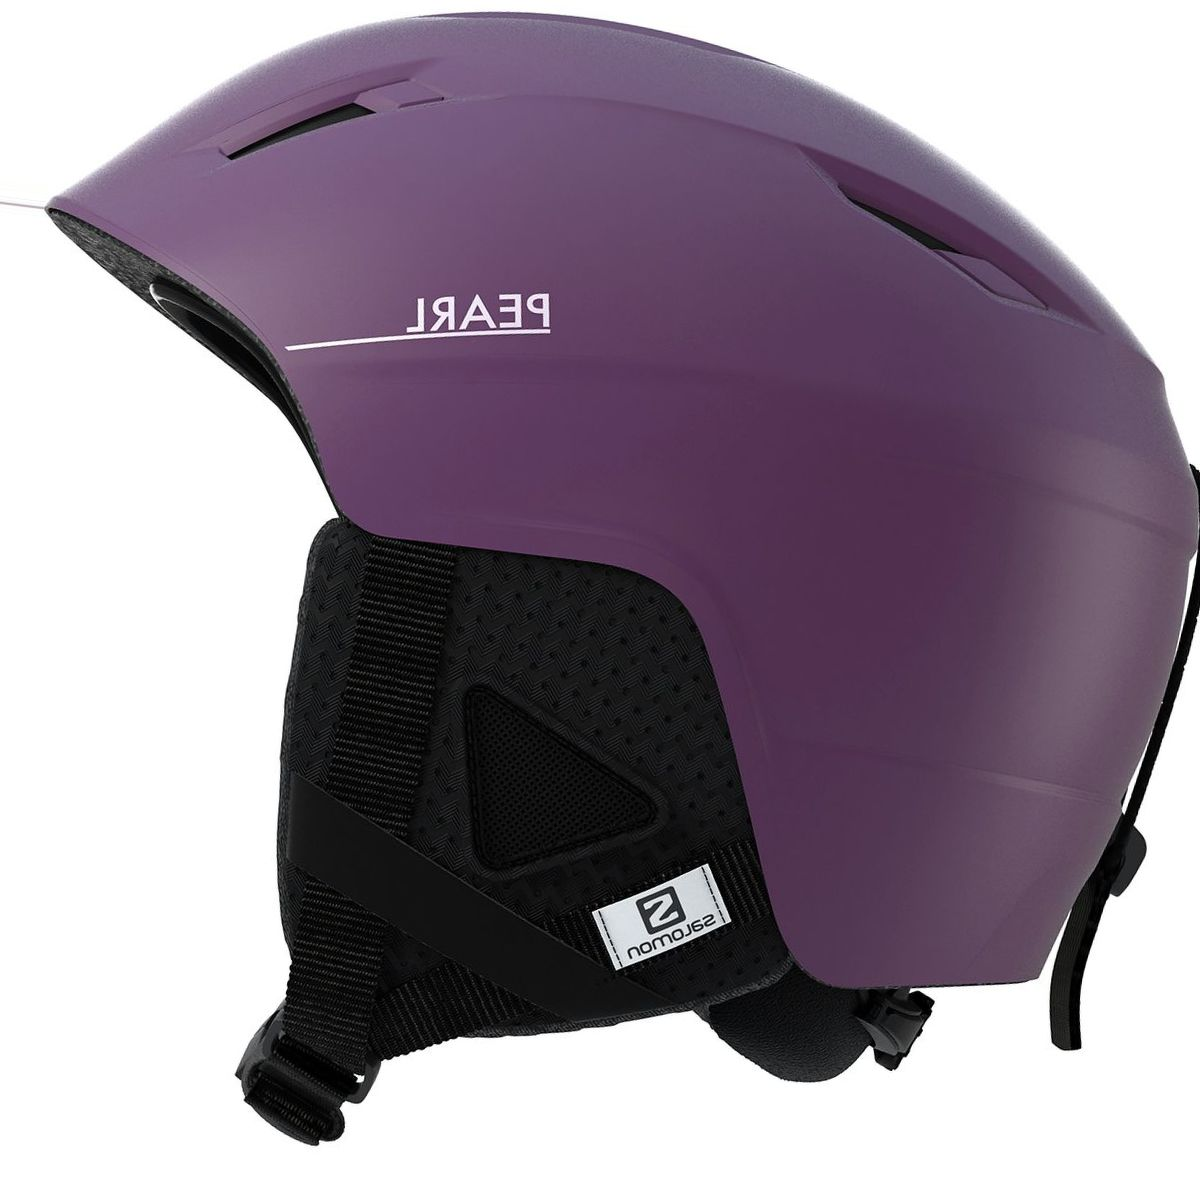 Salomon Pearl2+ Helmet - Women's